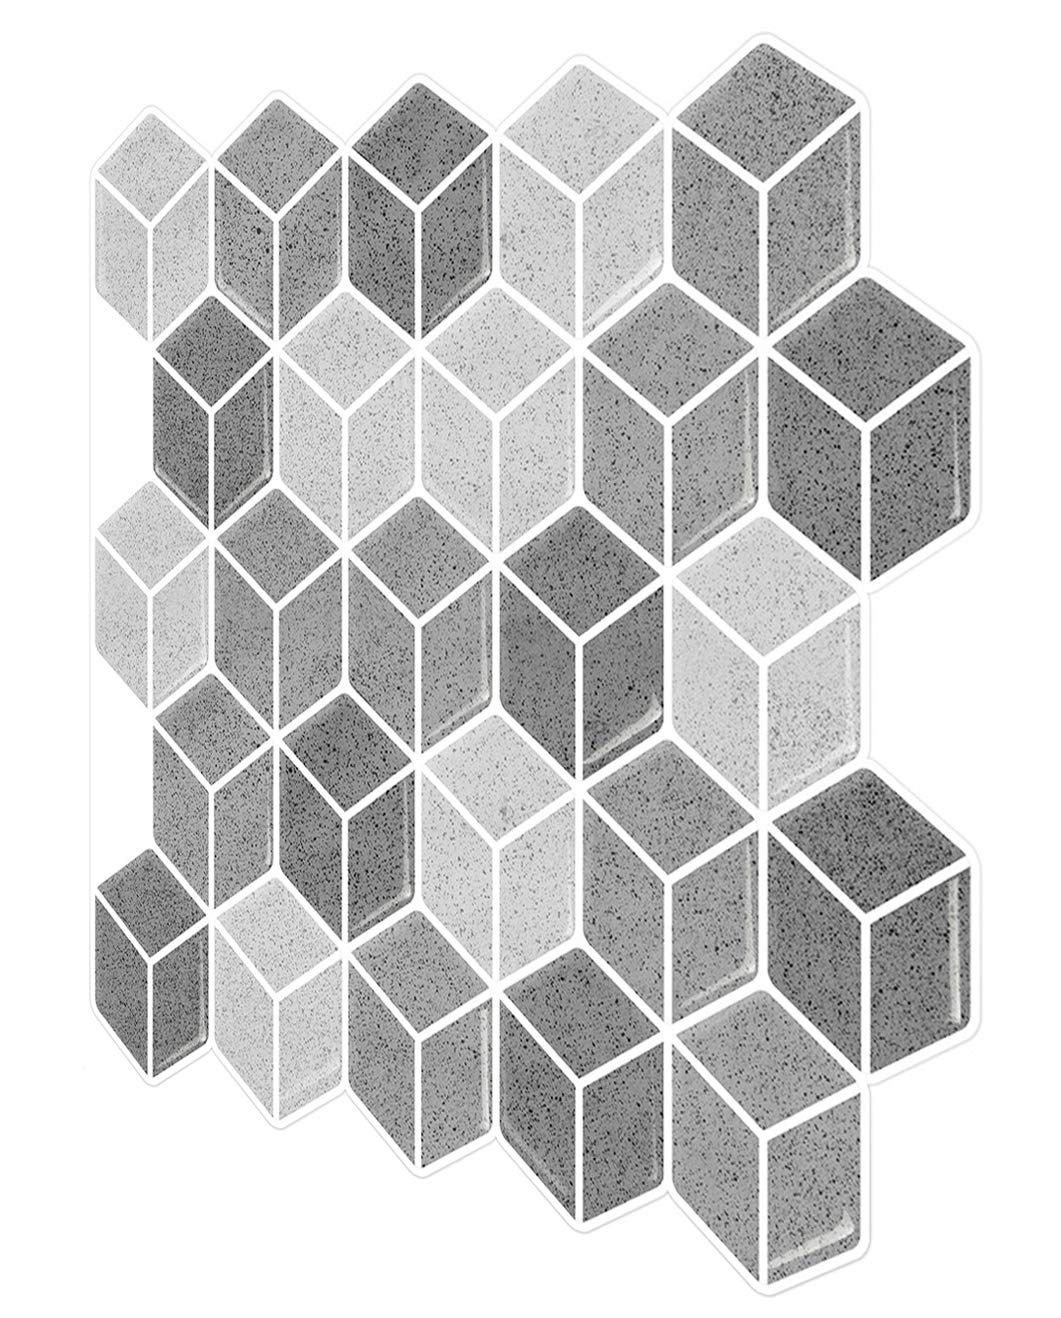 Tic Tac Tiles – Premium Anti Mold Peel and Stick Wall Tile Backsplash in Cube Design Grigio, 6